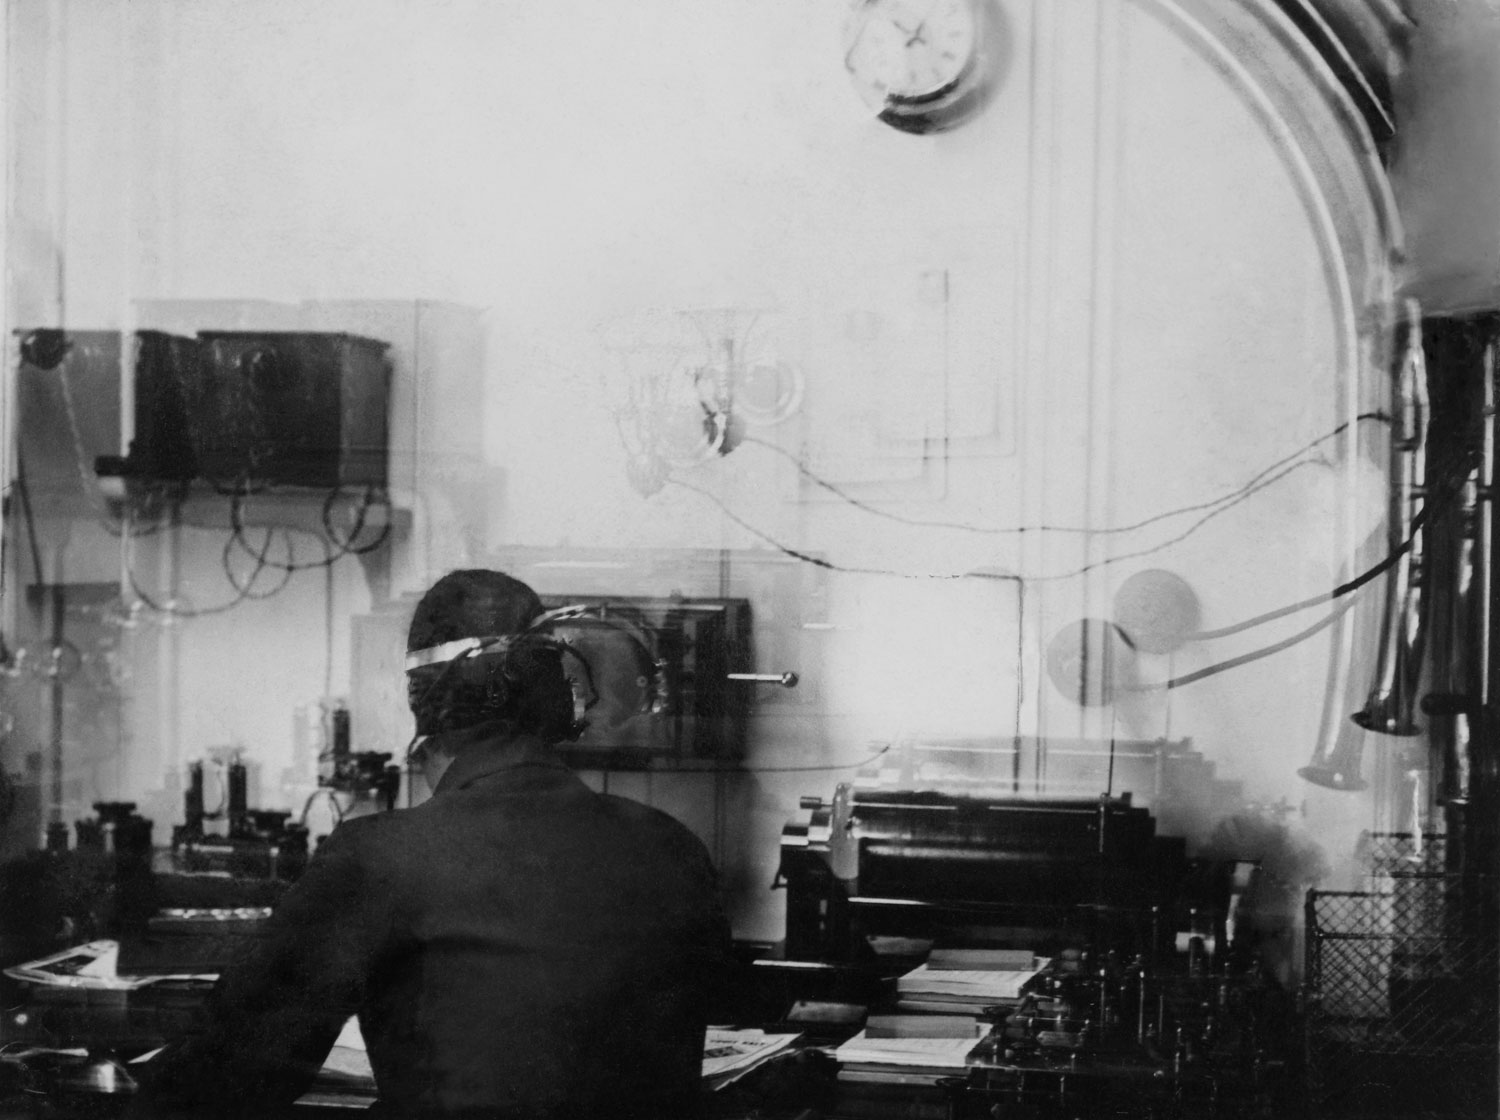 Wireless operator Harold Bride at work in the Marconi Room on the Titanic, 1912.